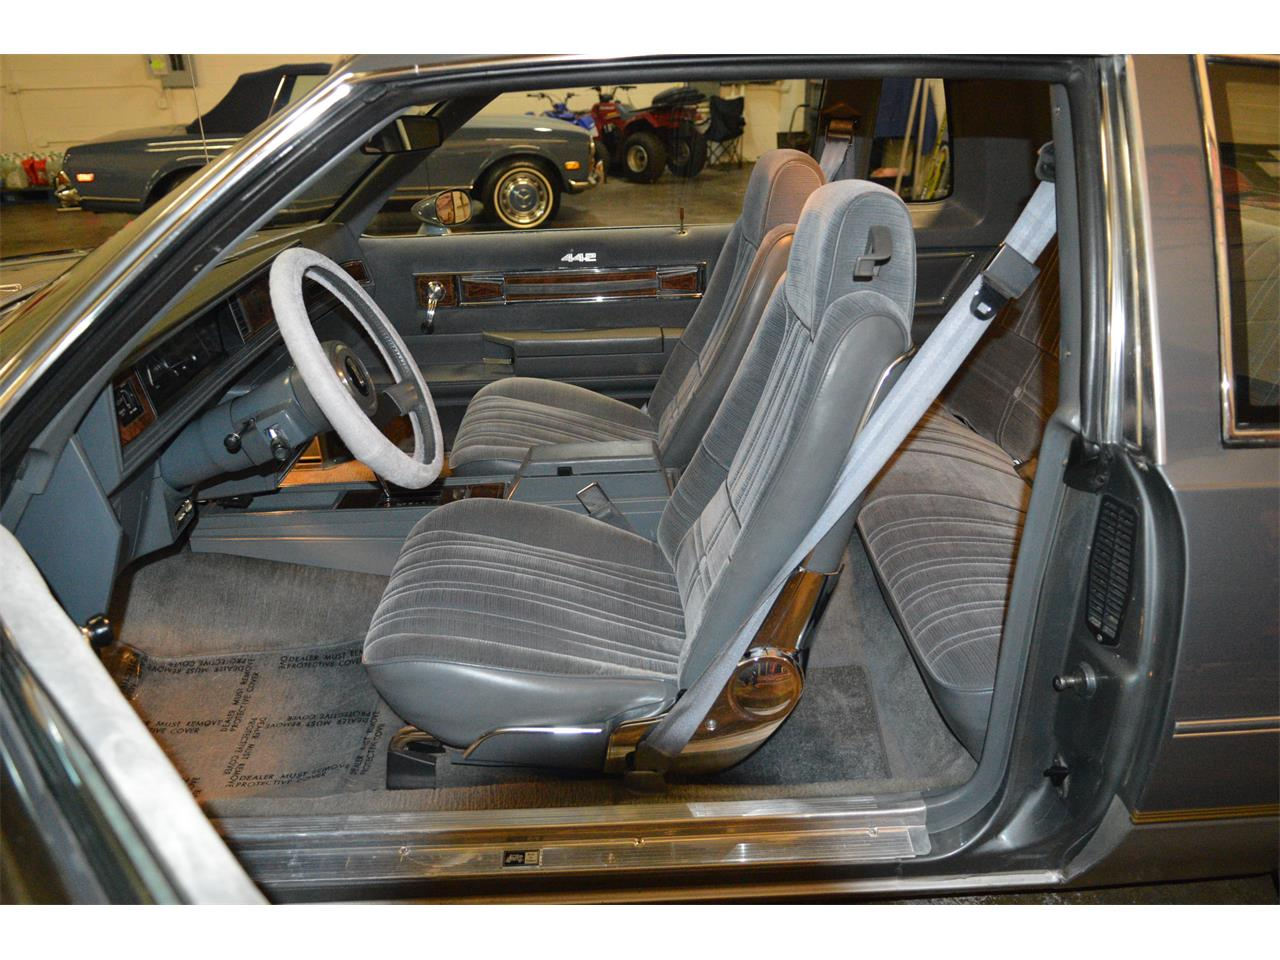 Large Picture of '85 Oldsmobile Cutlass located in Pennsylvania Offered by L.R.A. Enterprises Auto Museum & Sales - PQP1